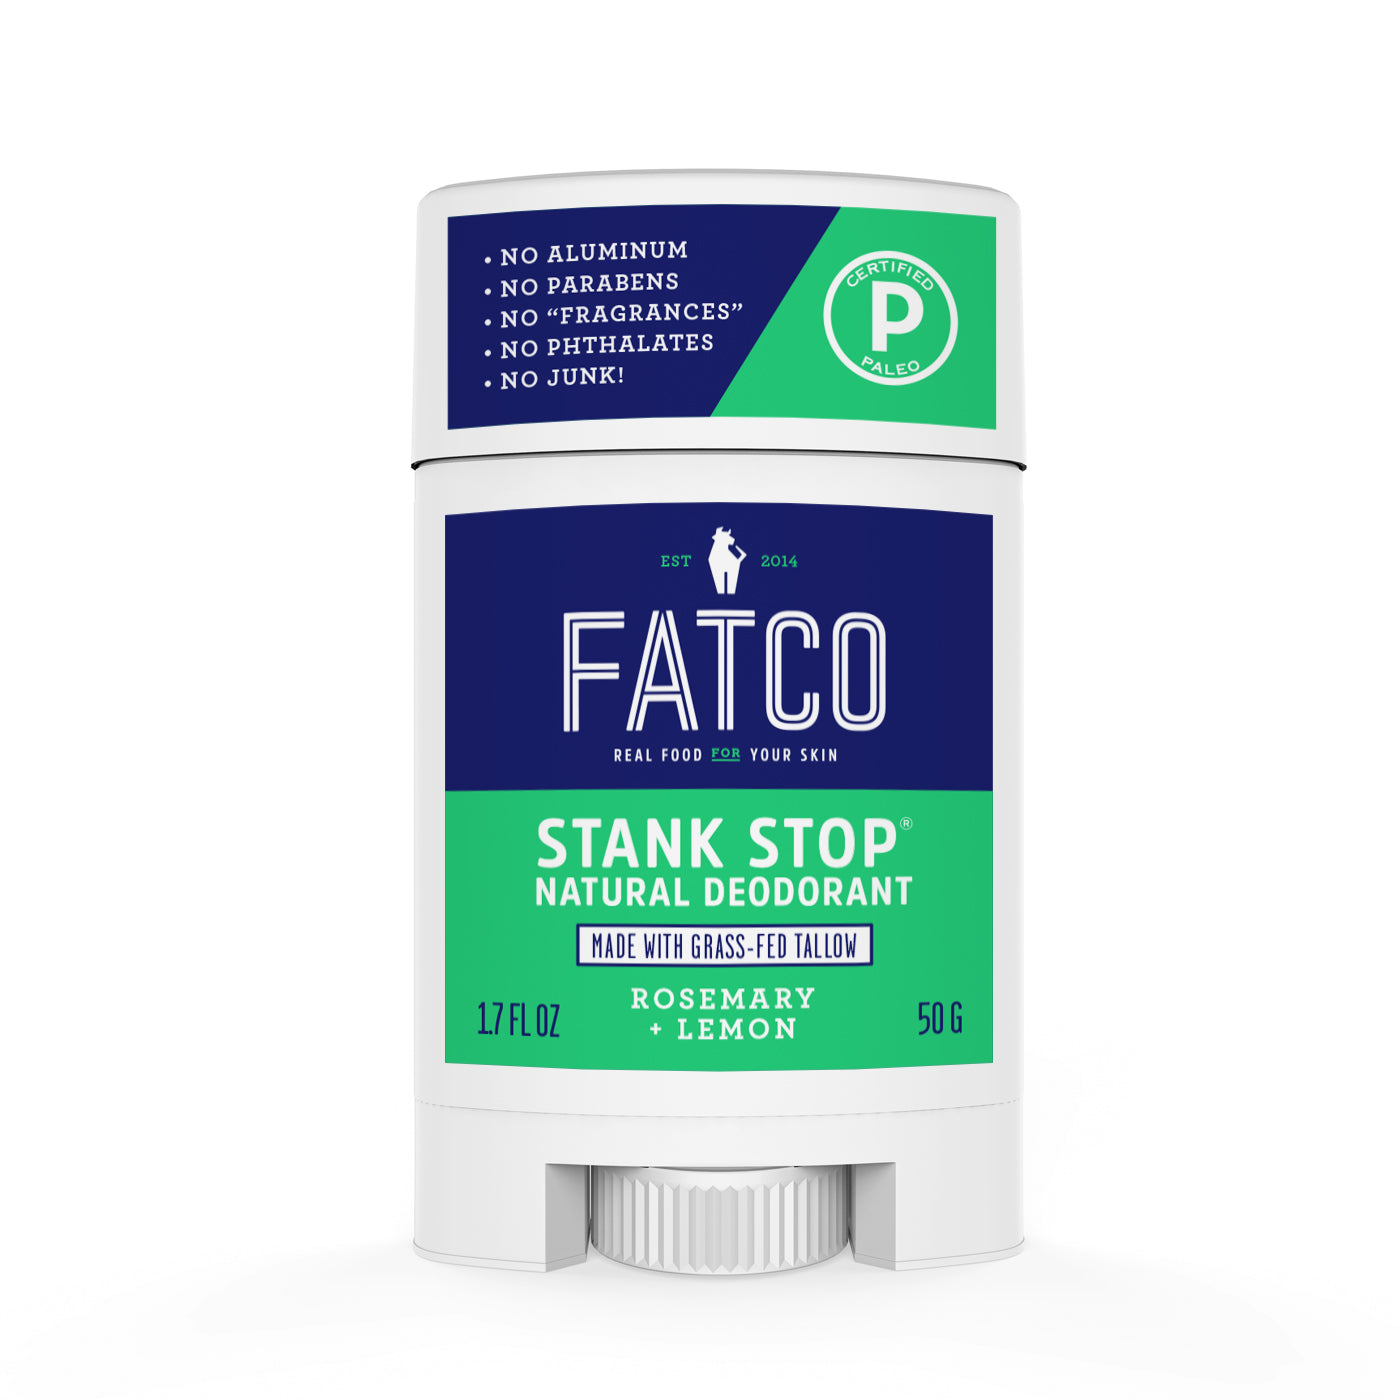 STANK STOP DEODORANT STICK, ROSEMARY+LEMON, 1.7 OZ